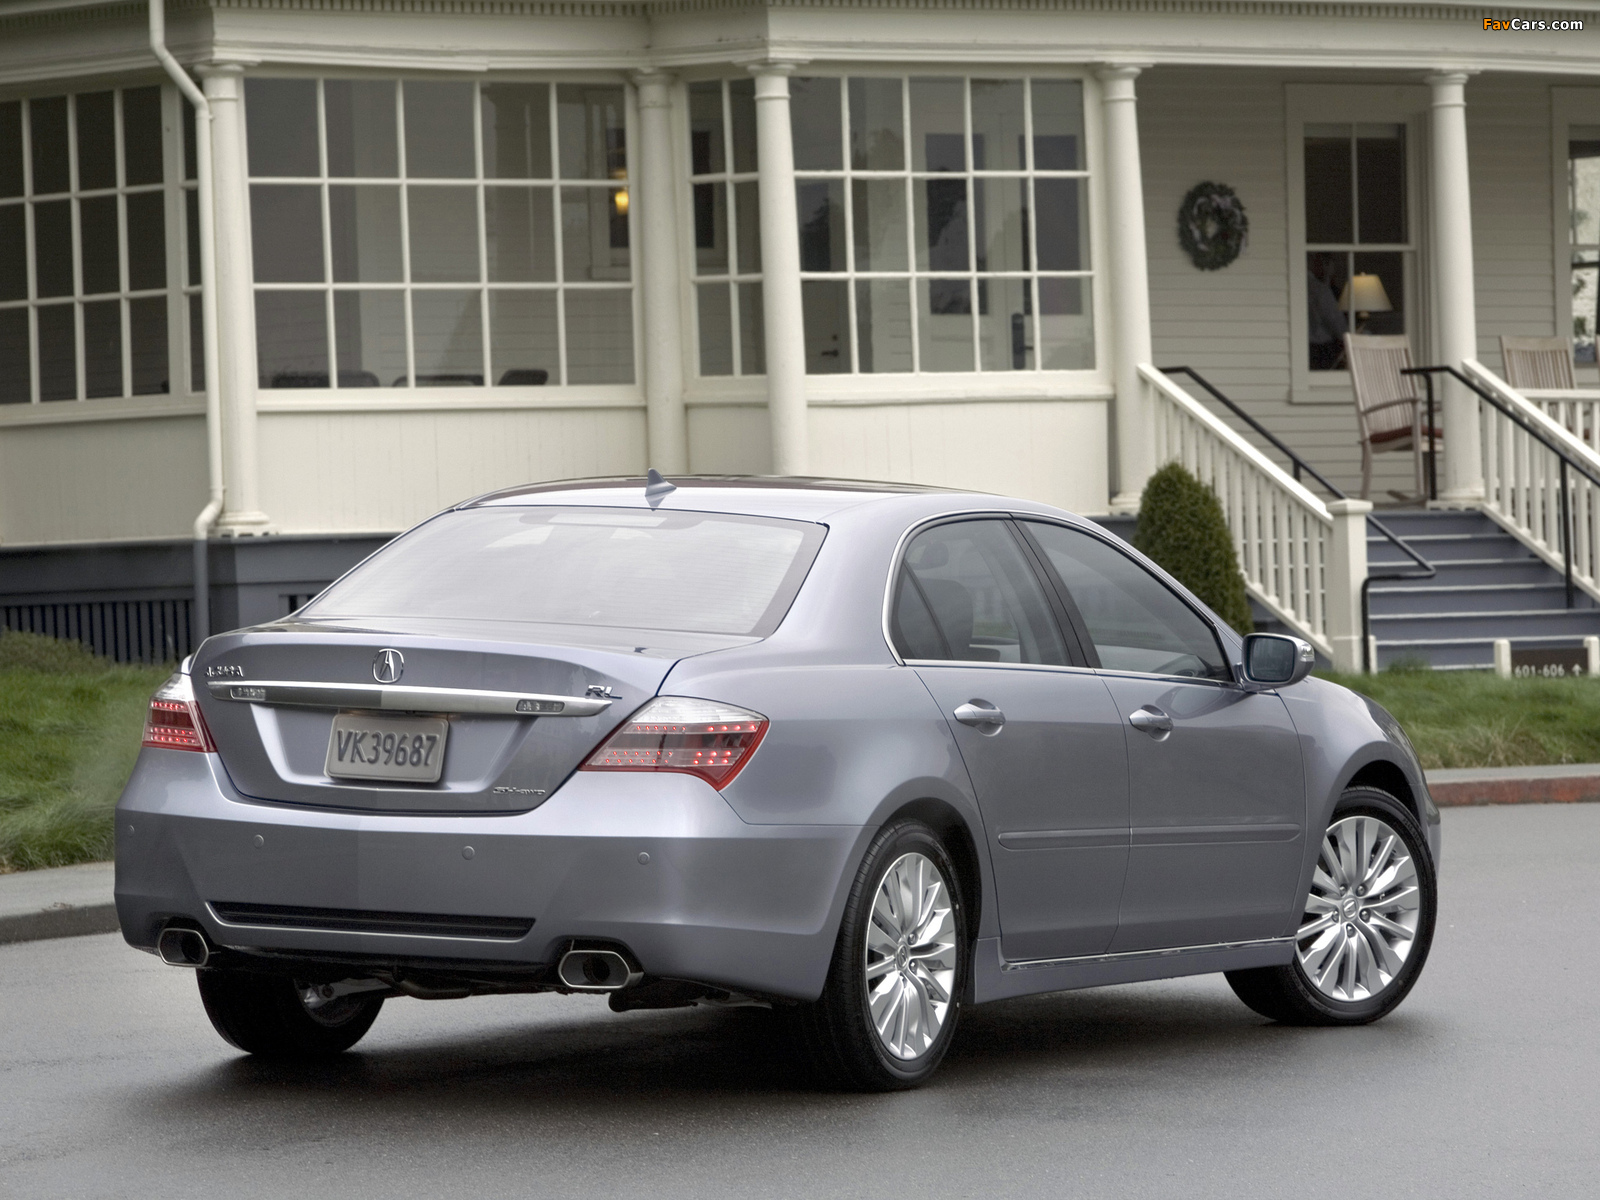 Acura RL (2010) wallpapers (1600 x 1200)